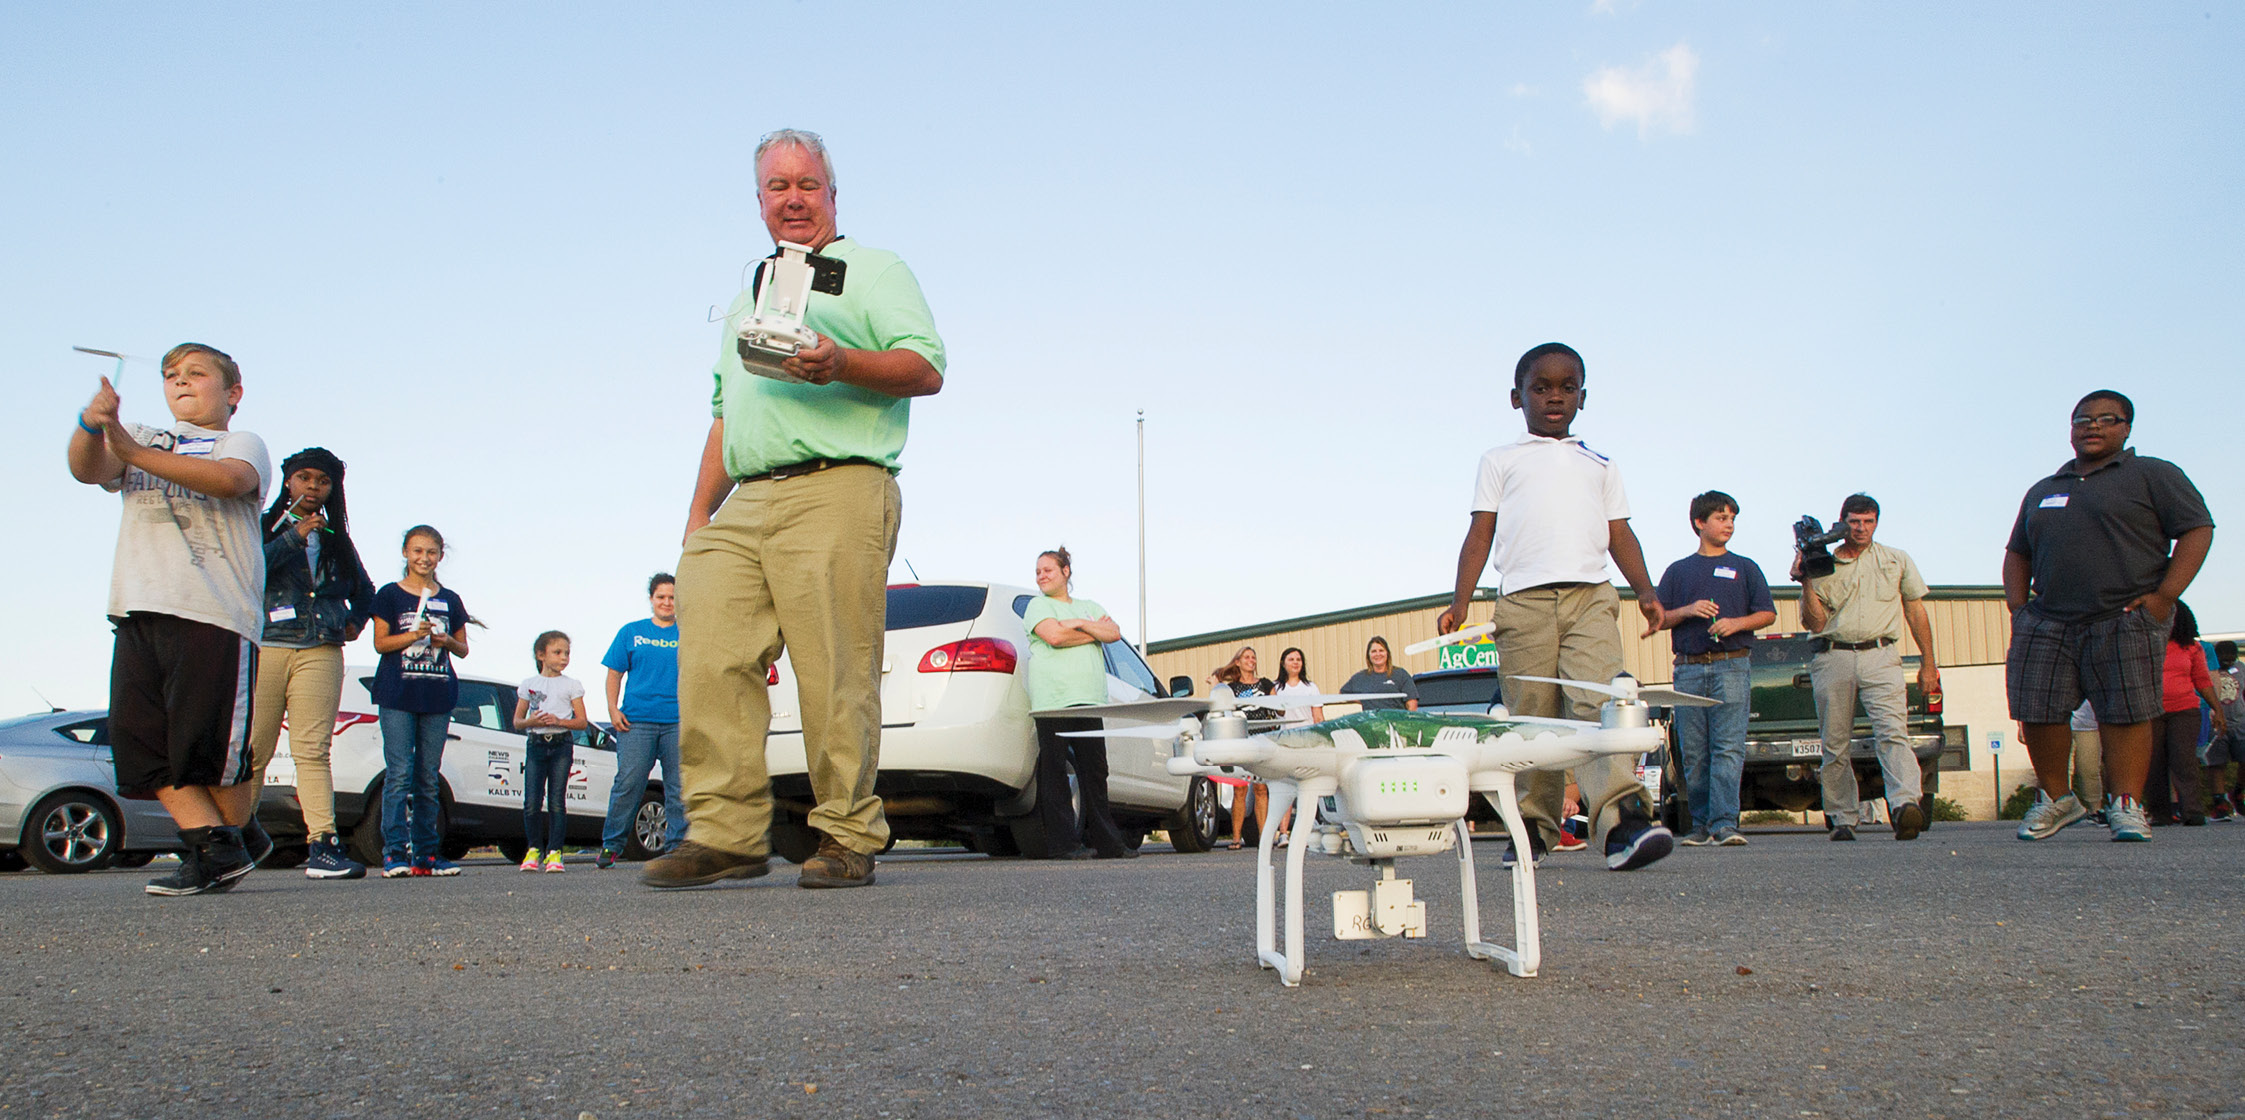 4-H'ers Discover Drones on National Science Day